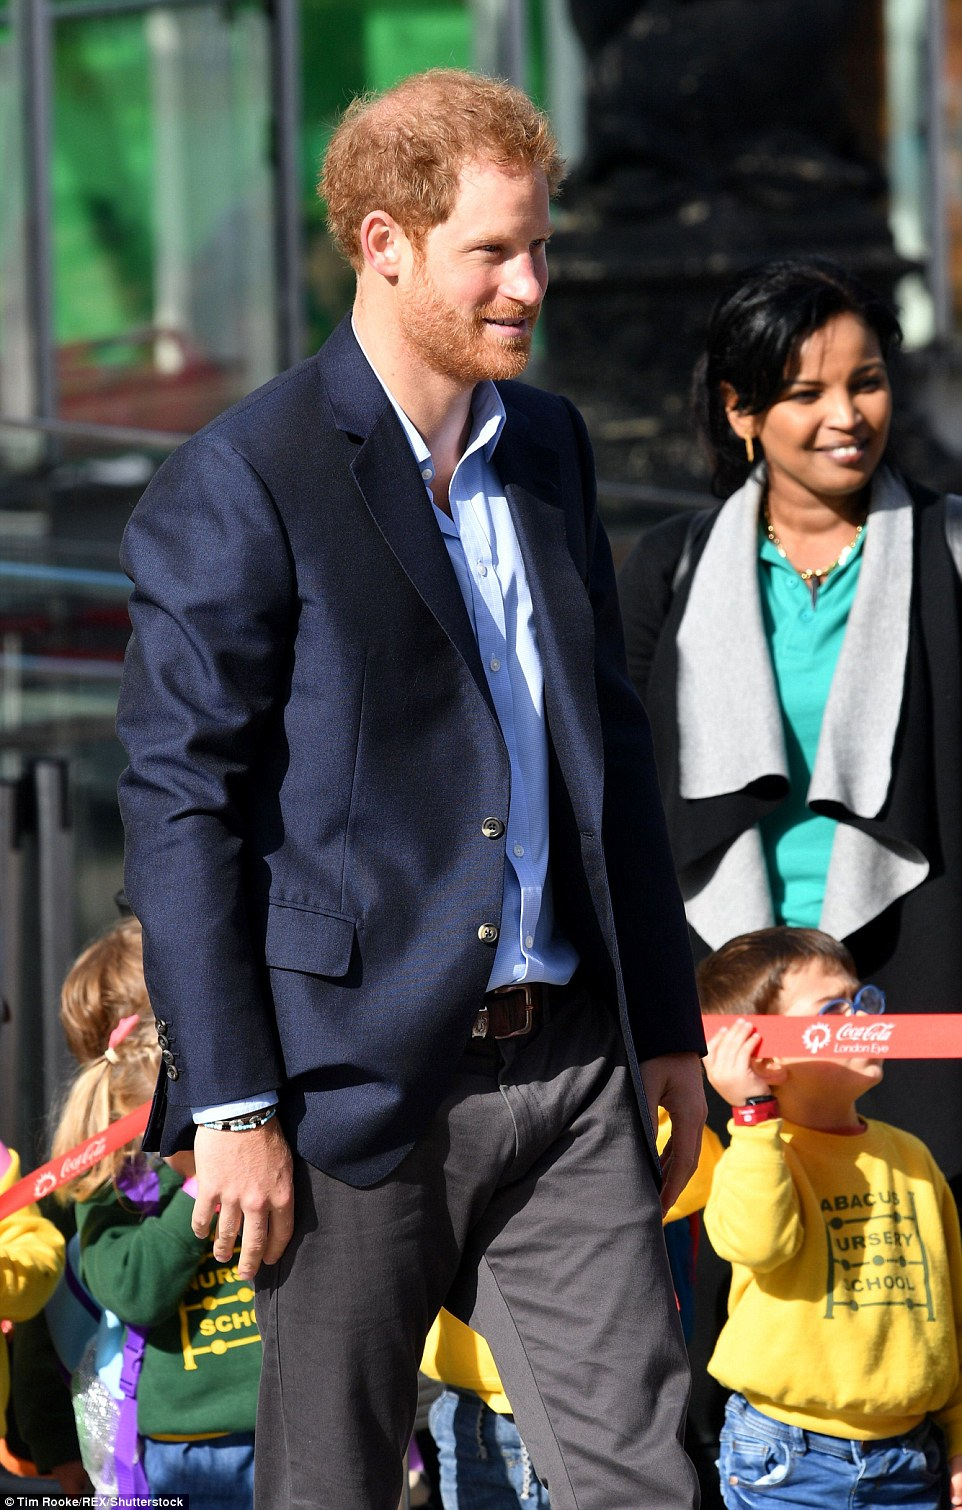 A smiling Prince Harry soaks up the atmosphere on a sunny afternoon on London's Southbank